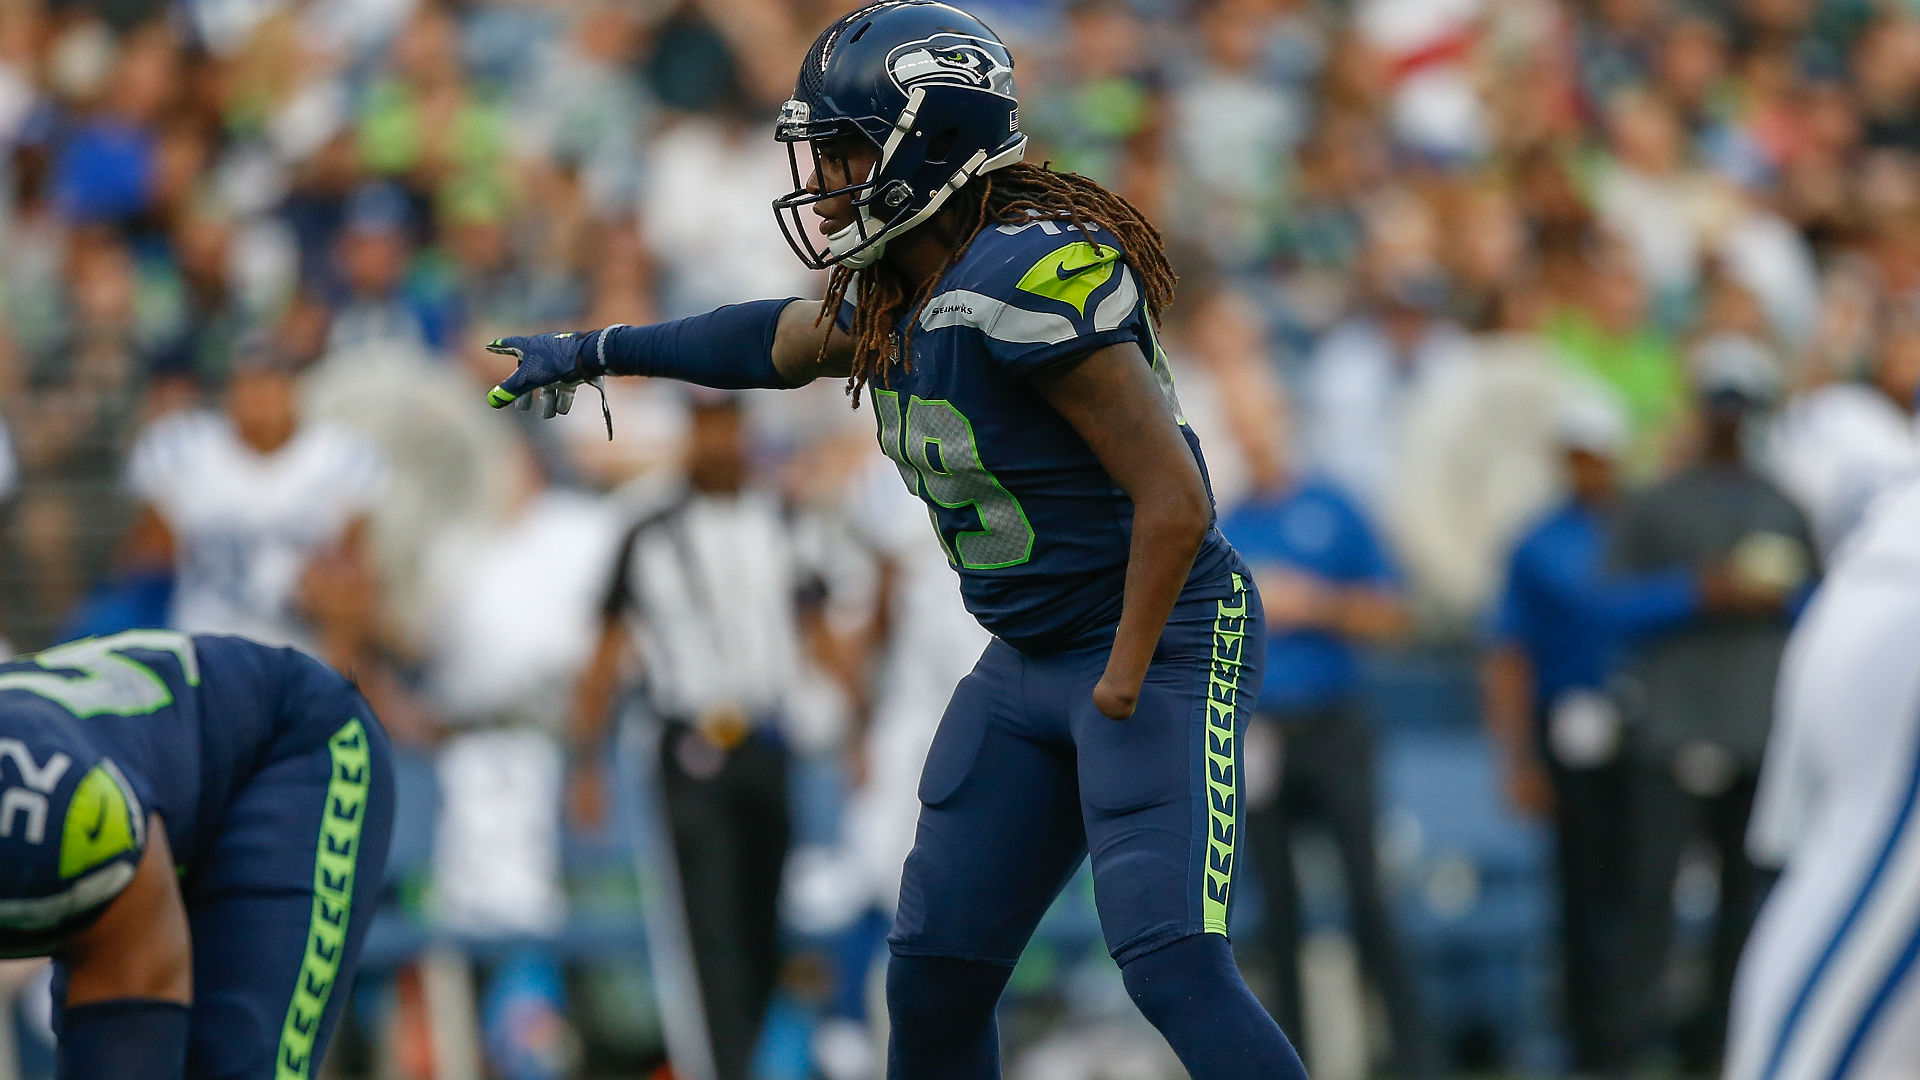 Wright has knee surgery, status for Seahawks' opener unknown